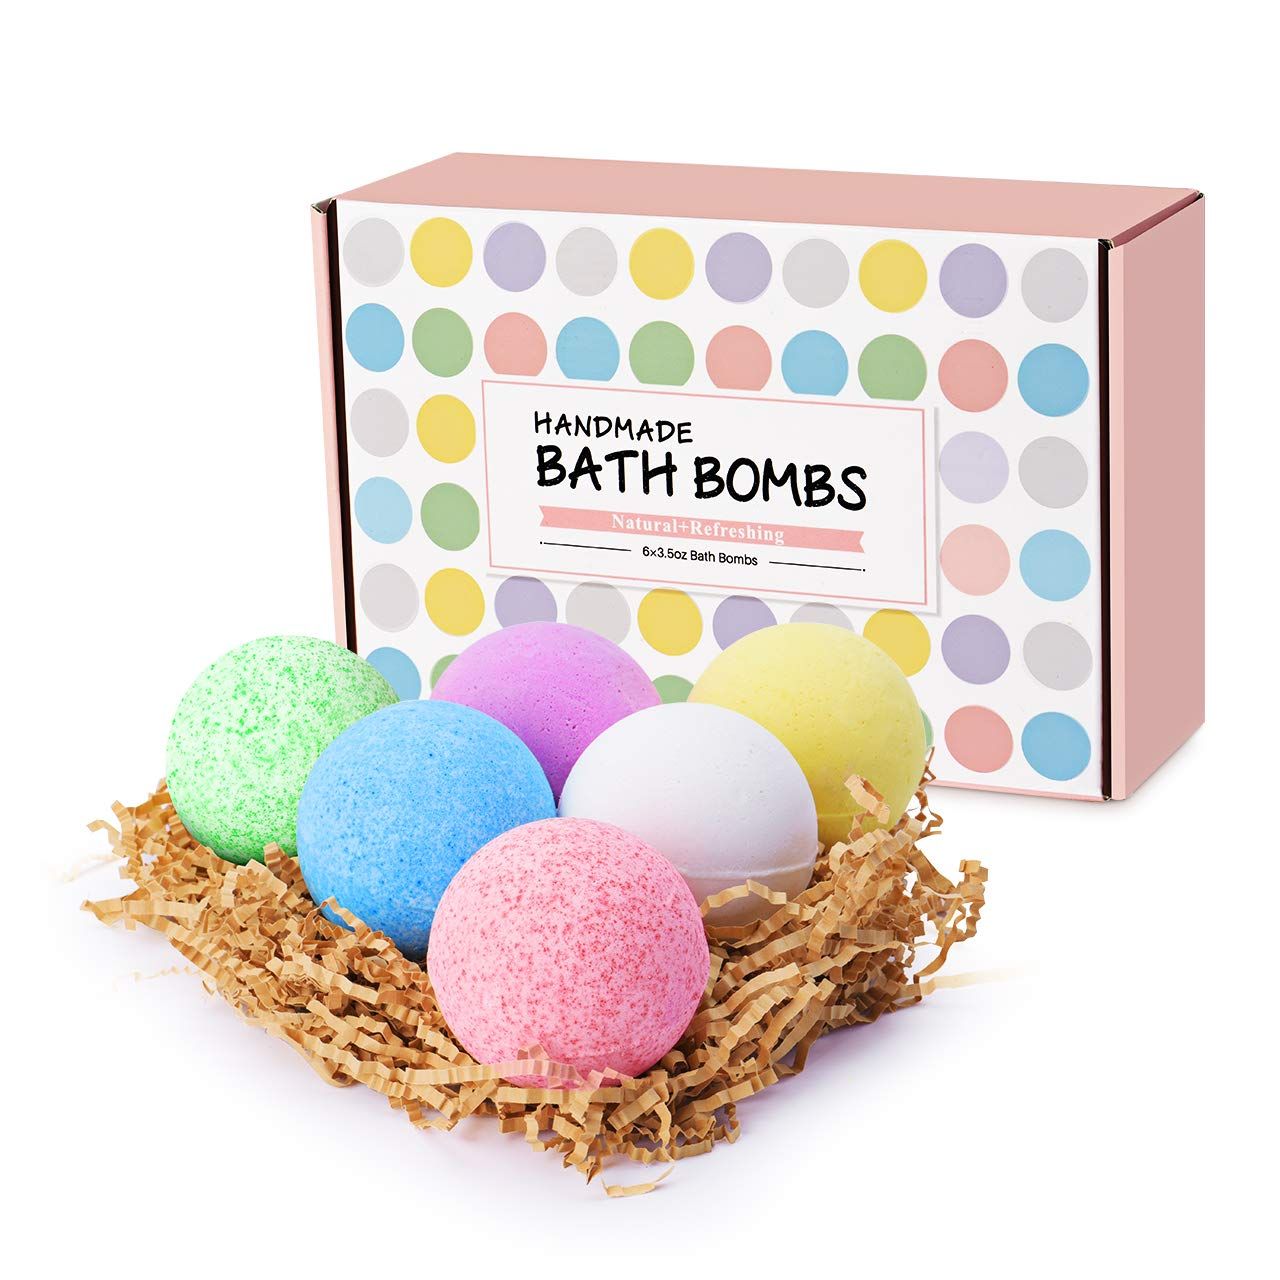 6 x 3.5oz Bath Bomb Gift Set, VicTsing lush Fizzy Spa Set with All Natural Essential Oils, Shea Butter, Sea Salt for Dry Skin, Spa Bubble Bath,Luxury Gift for Kids, Girlfriends, Women, Moms, Anniversary, Birthday.